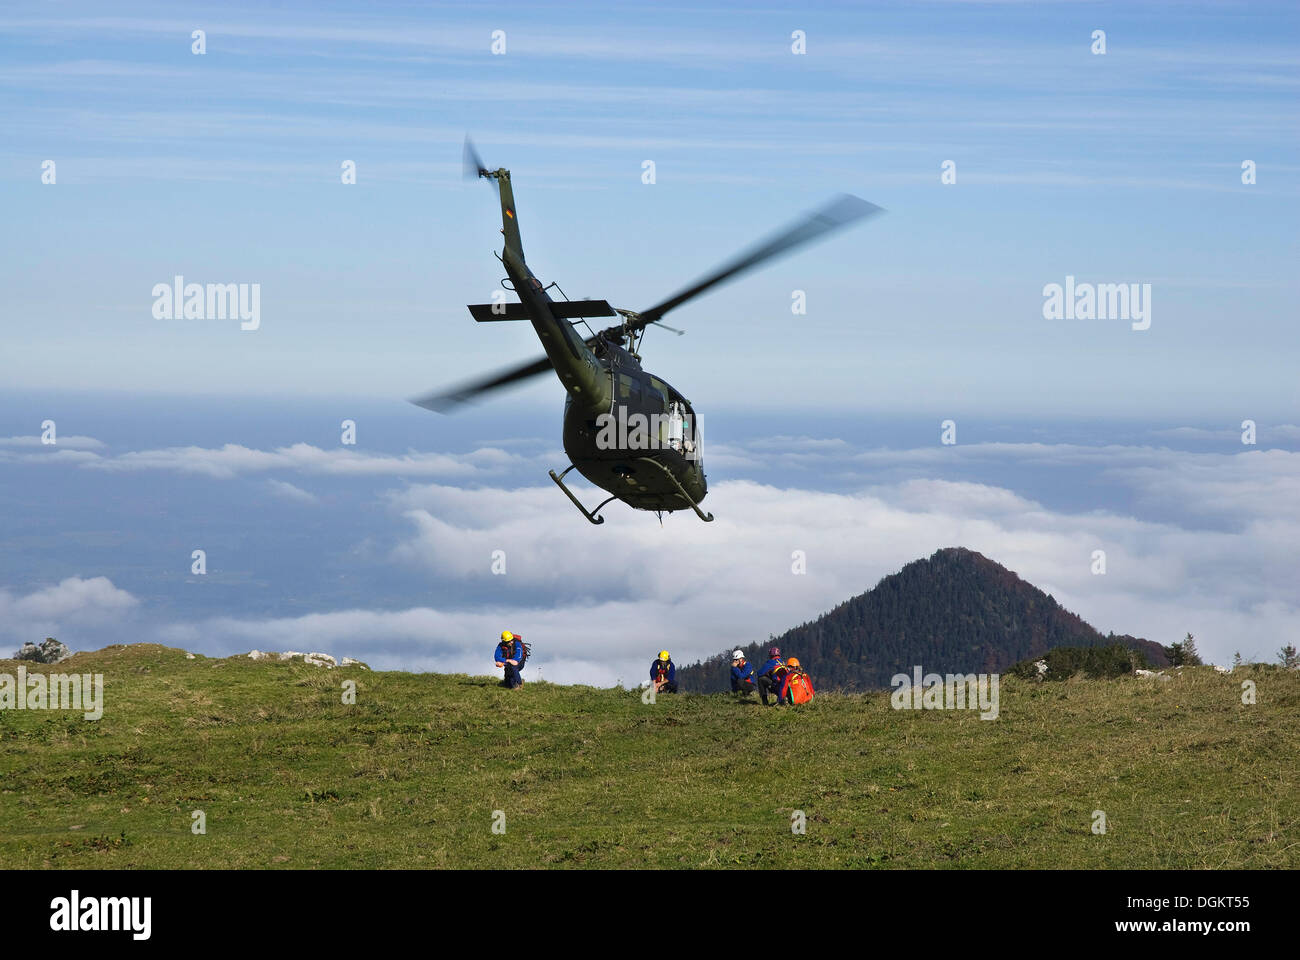 Helicopter being marshalled by rescue workers, German army helicopter in approach for landing, Chiemgau Alps, Bavaria - Stock Image